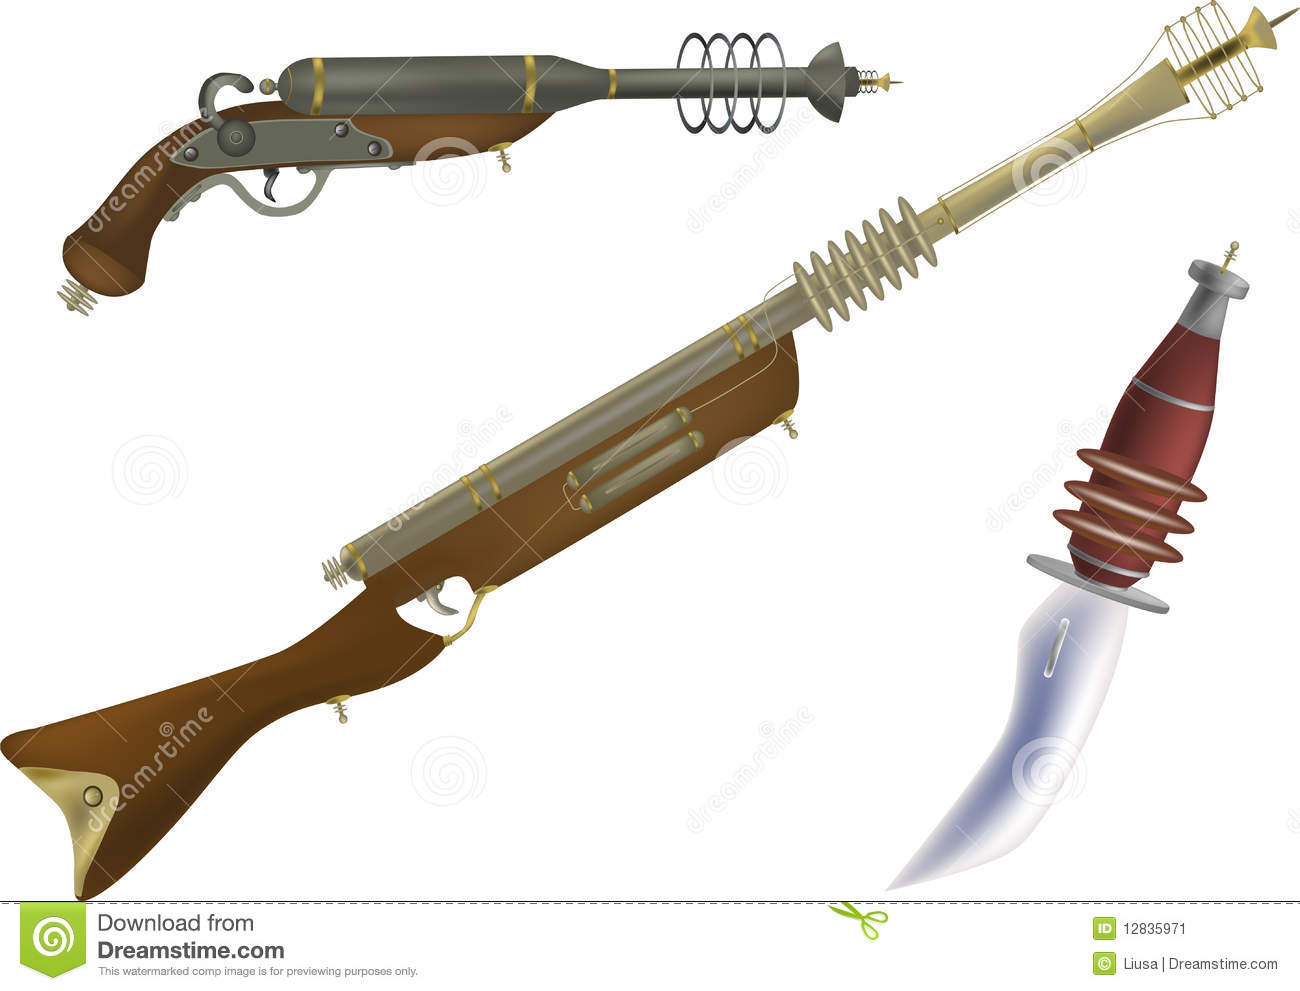 Fantastic fire and other weapon of the future and from films.